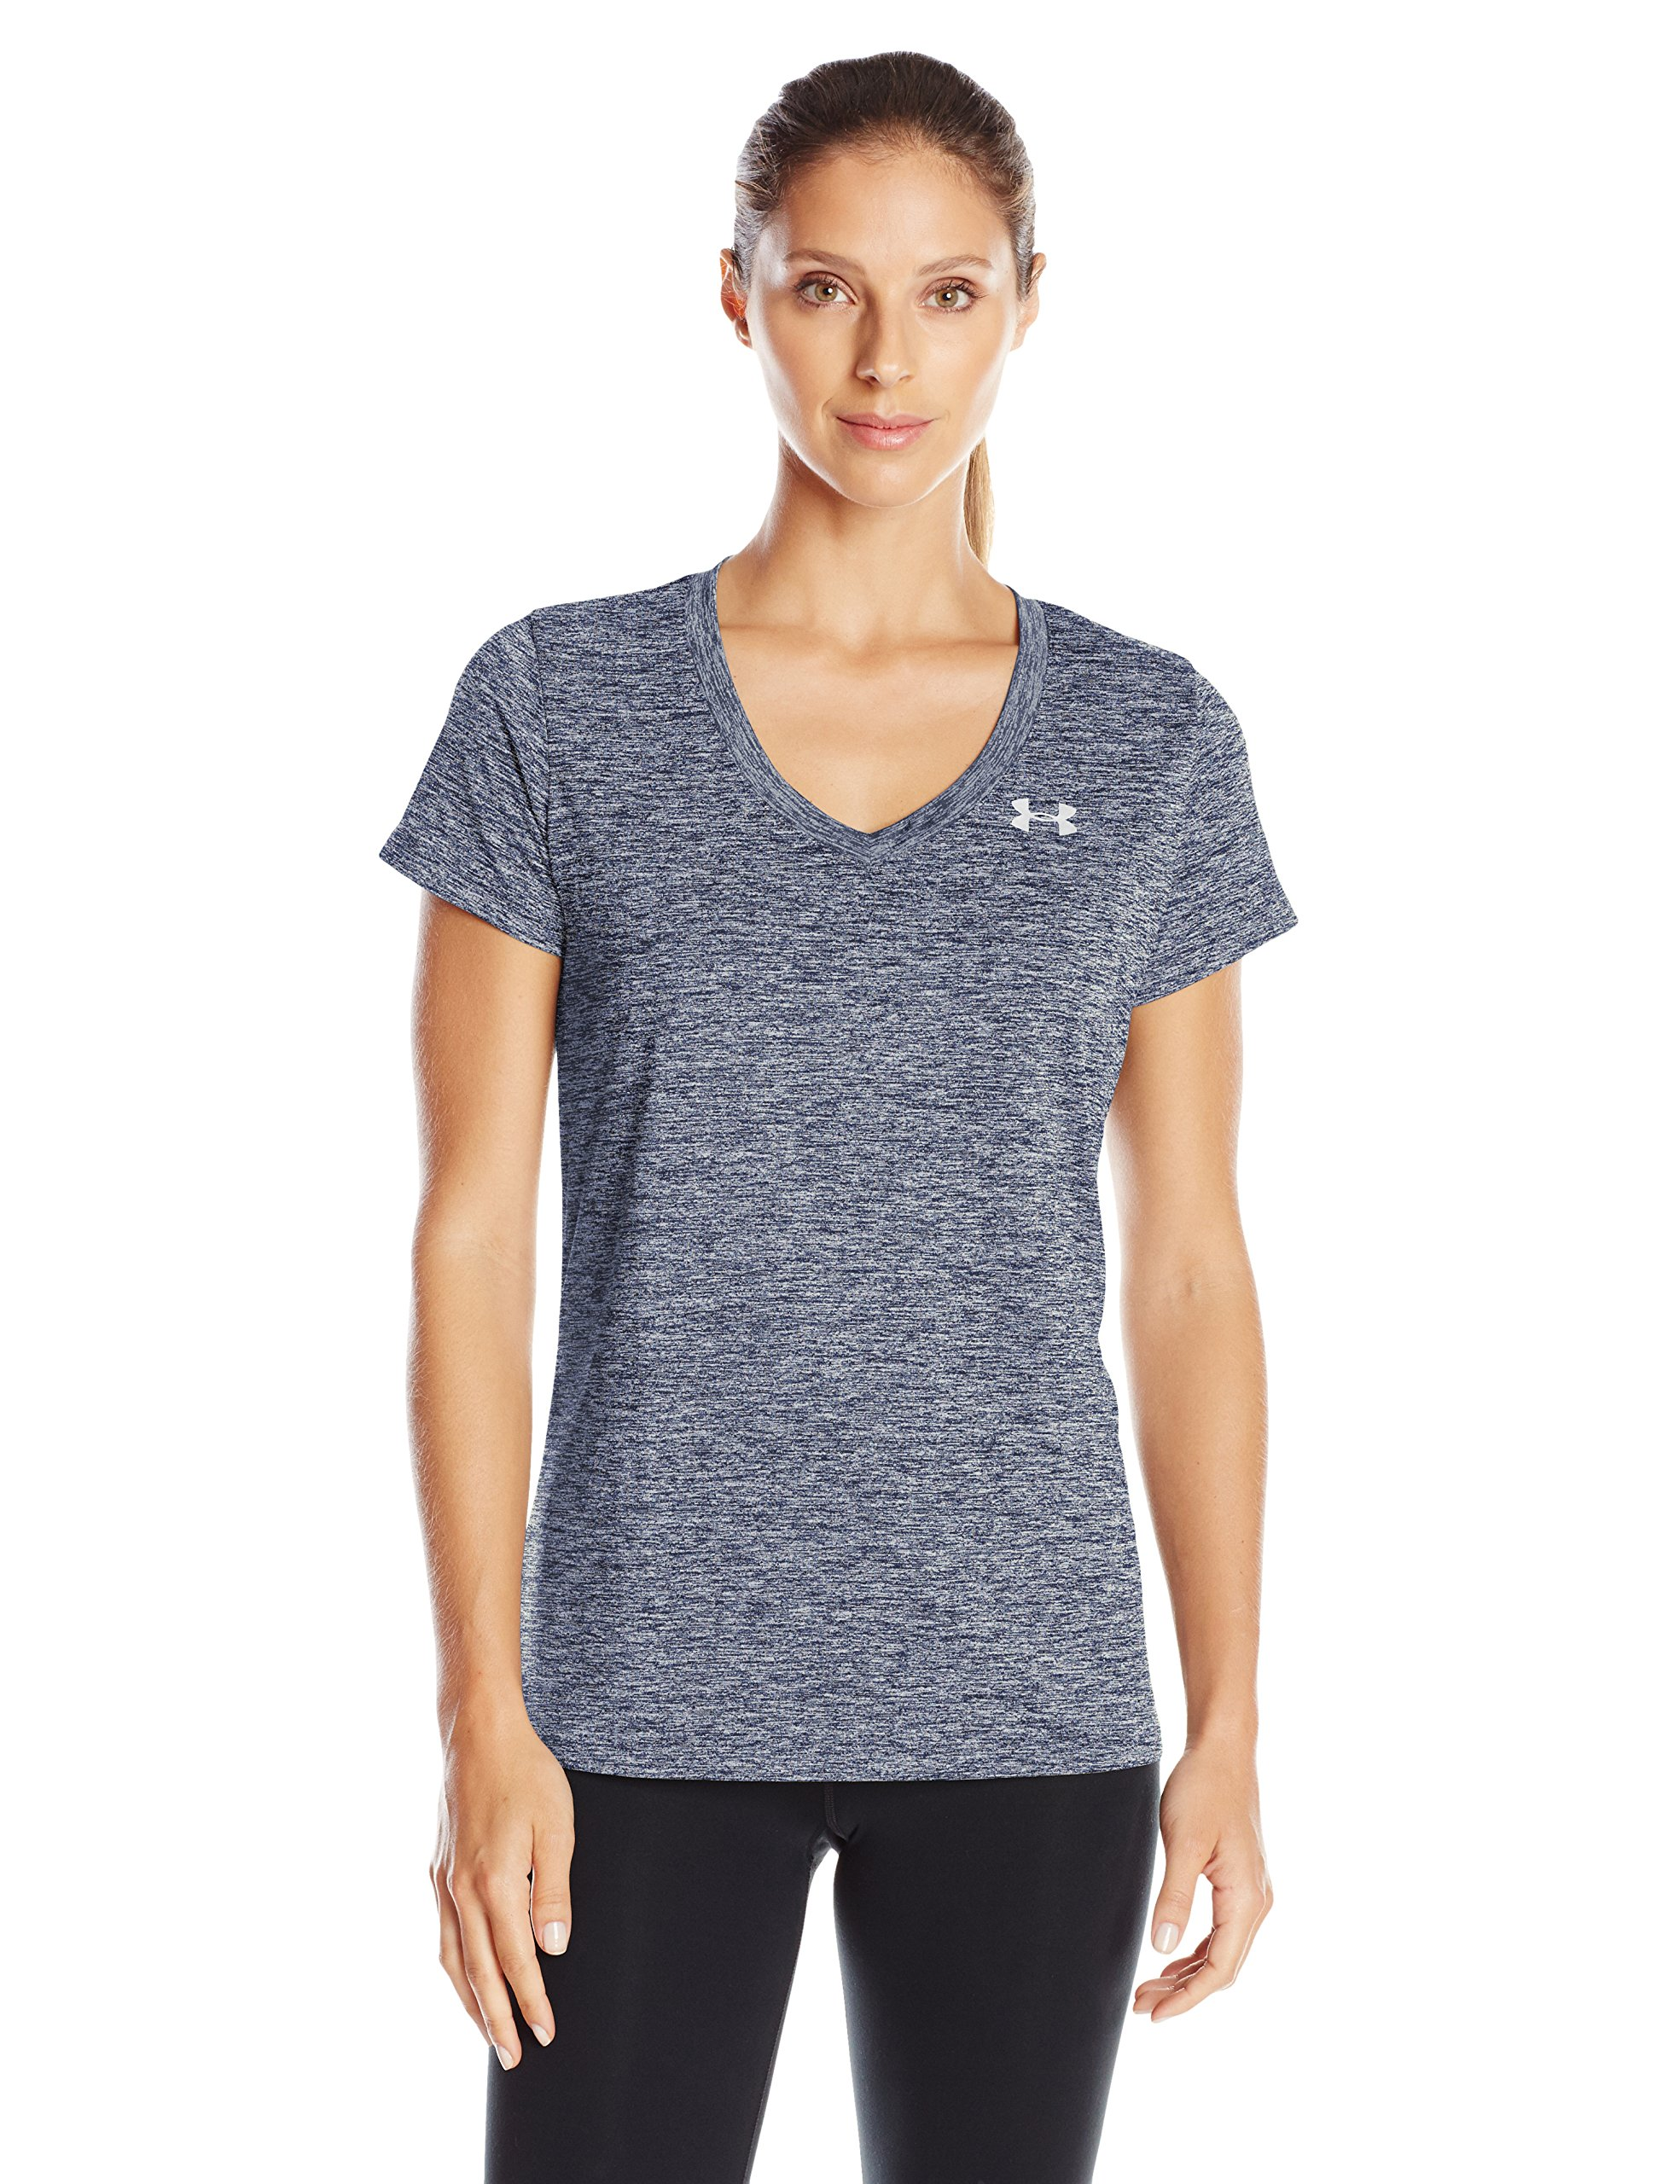 Under Armour Women's Tech Twist V-Neck, Academy (408)/Metallic Silver, X-Small